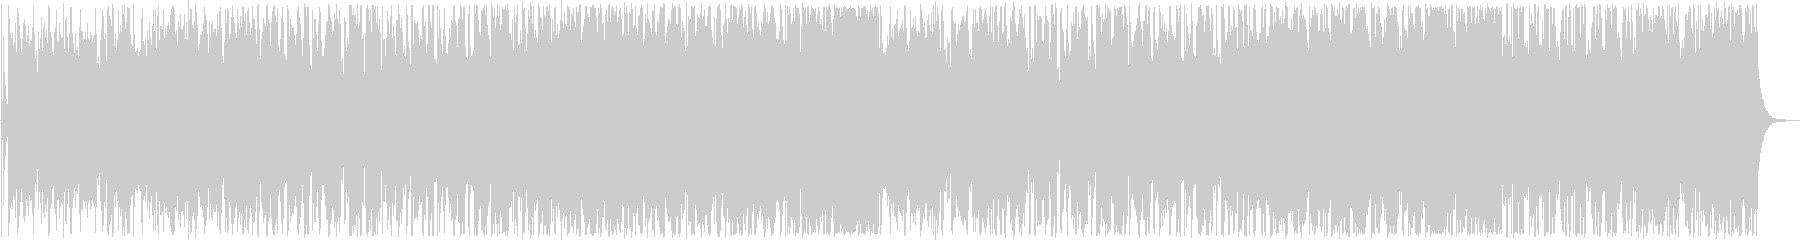 Jazz pops like you are in a bar's unreproduced waveform